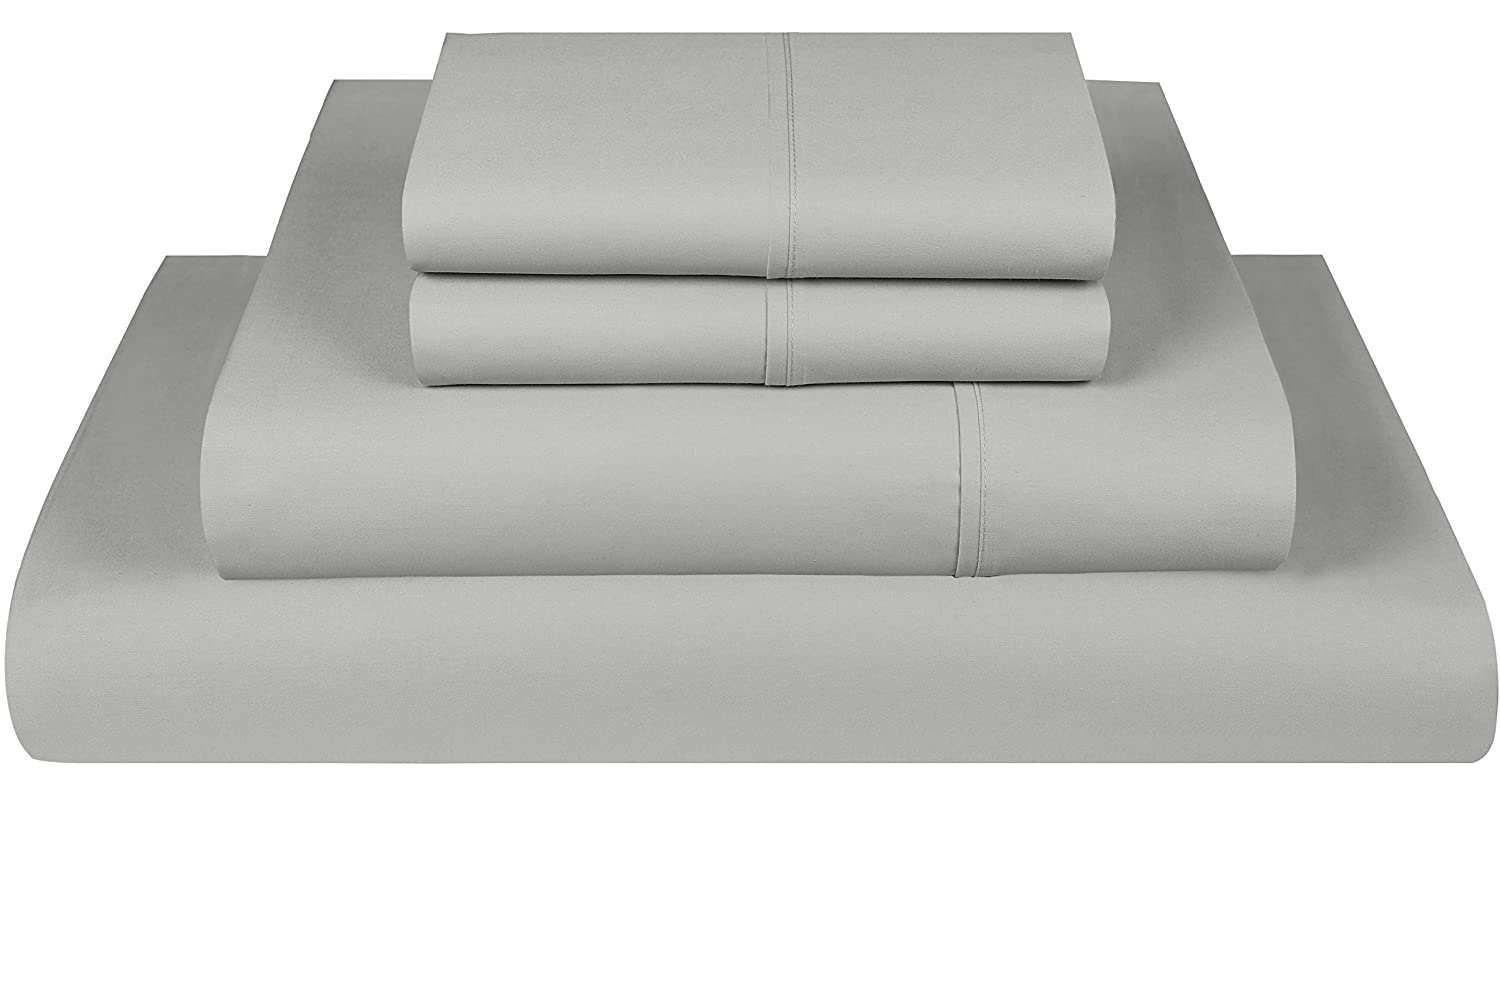 Threadmill Home Linen 800 Thread Count 100% Extra-Long Staple Cotton Solid Bed Sheet Set, California King Sheet, Luxury Bedding, California King 4 Piece Sheet Set, Smooth Sateen Weave,Silver